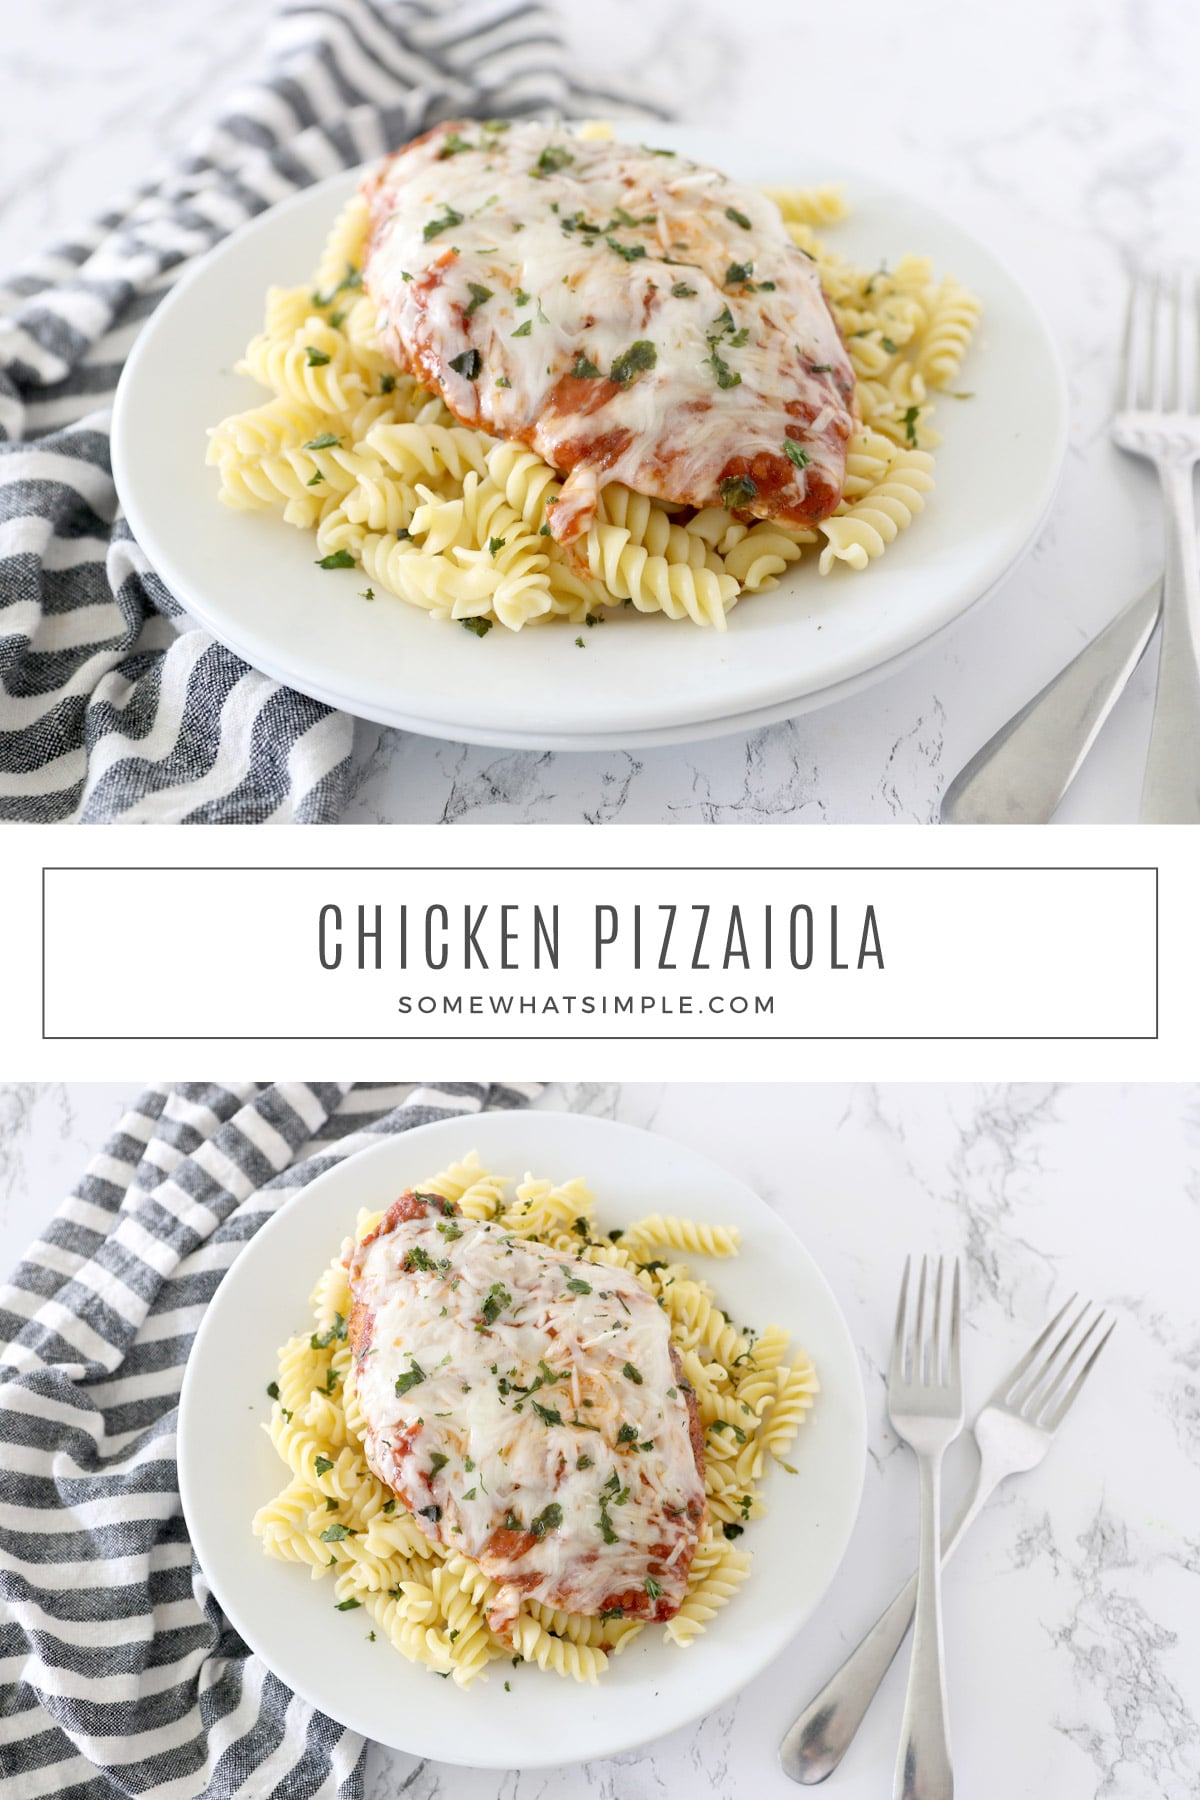 Chicken Pizzaiola is a classic Italian recipe that is popular for a reason! Its tried-and-true flavors are pure comfort, and it couldn't be any easier to make. via @somewhatsimple